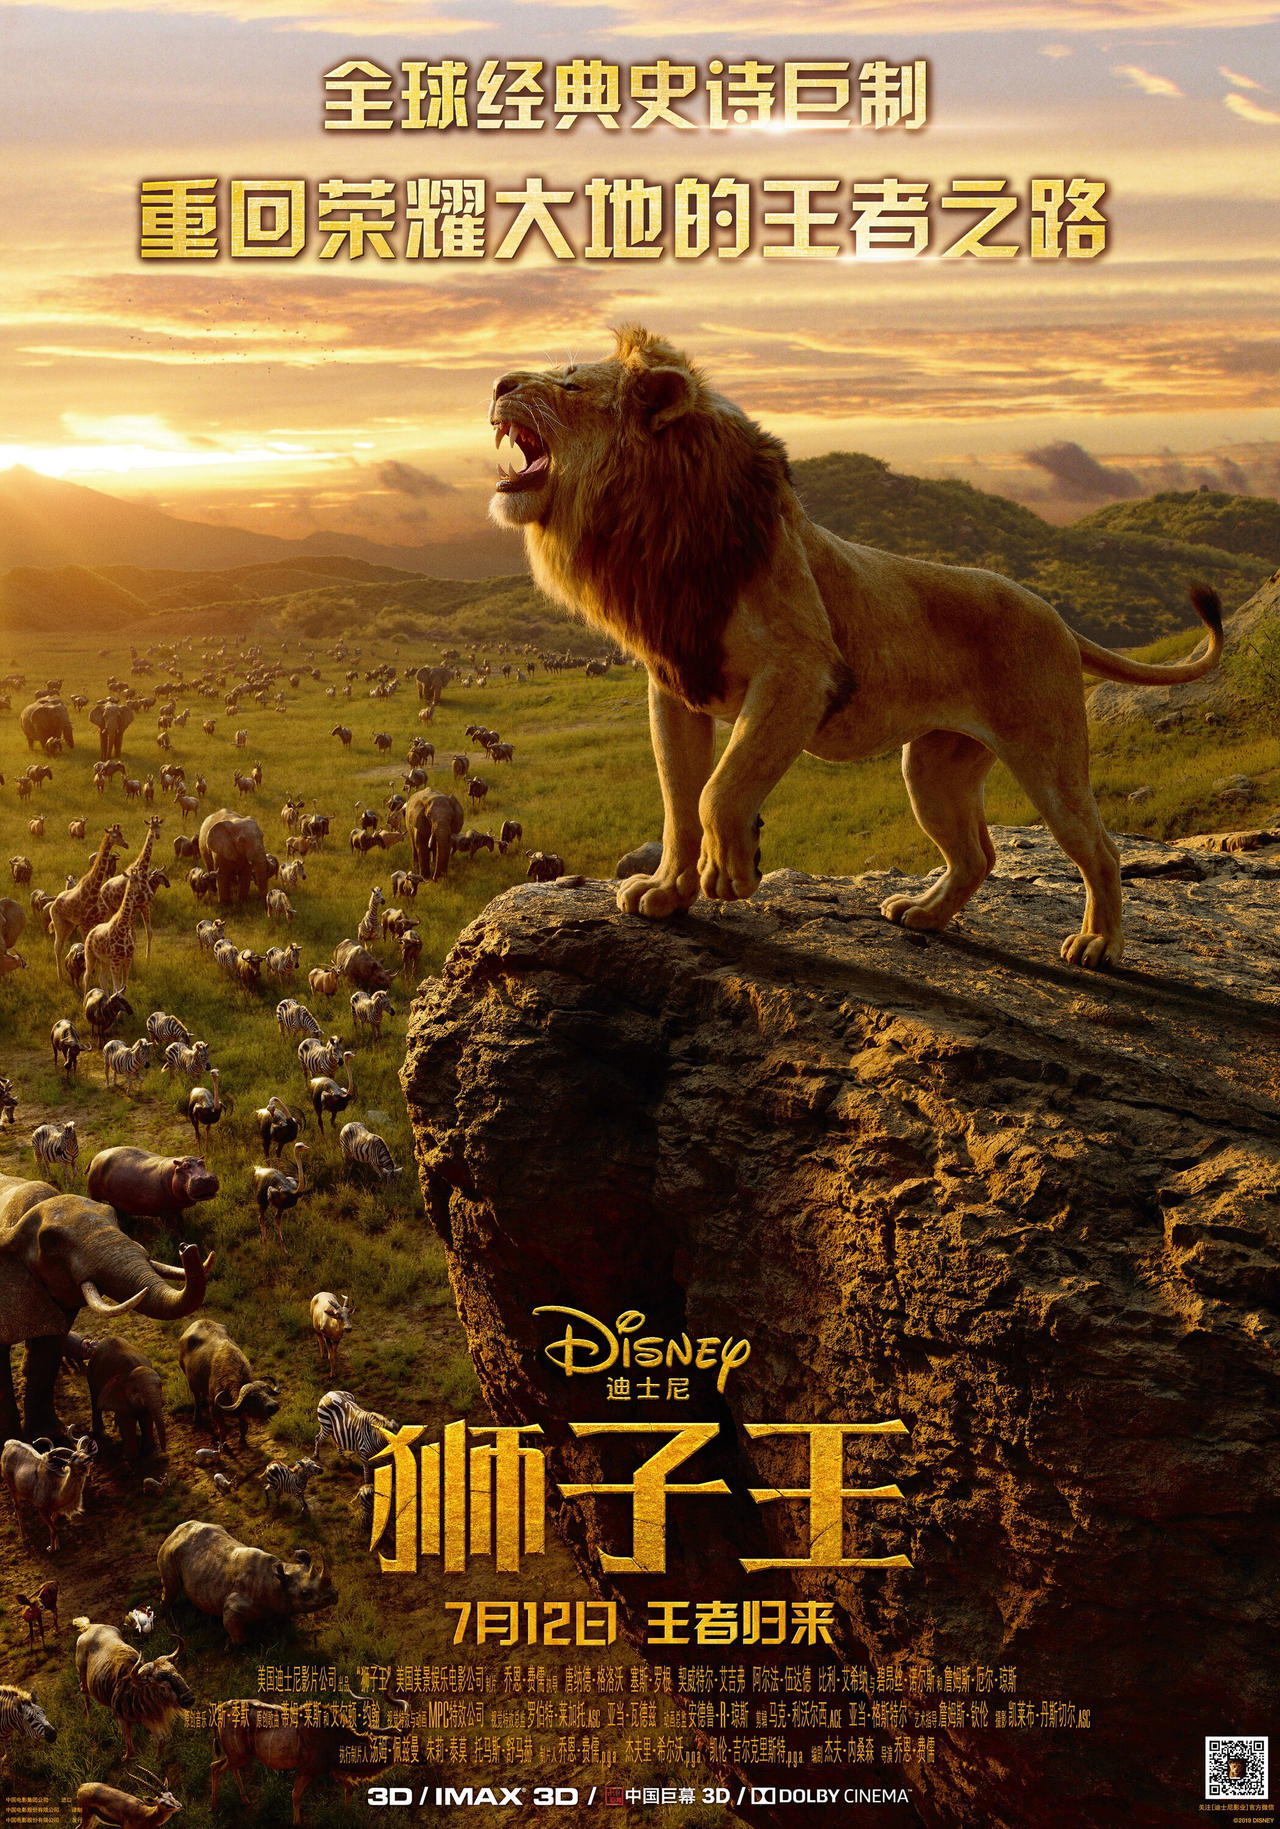 New Lion King 2019 Chinese Poster By Artlover67 On Deviantart